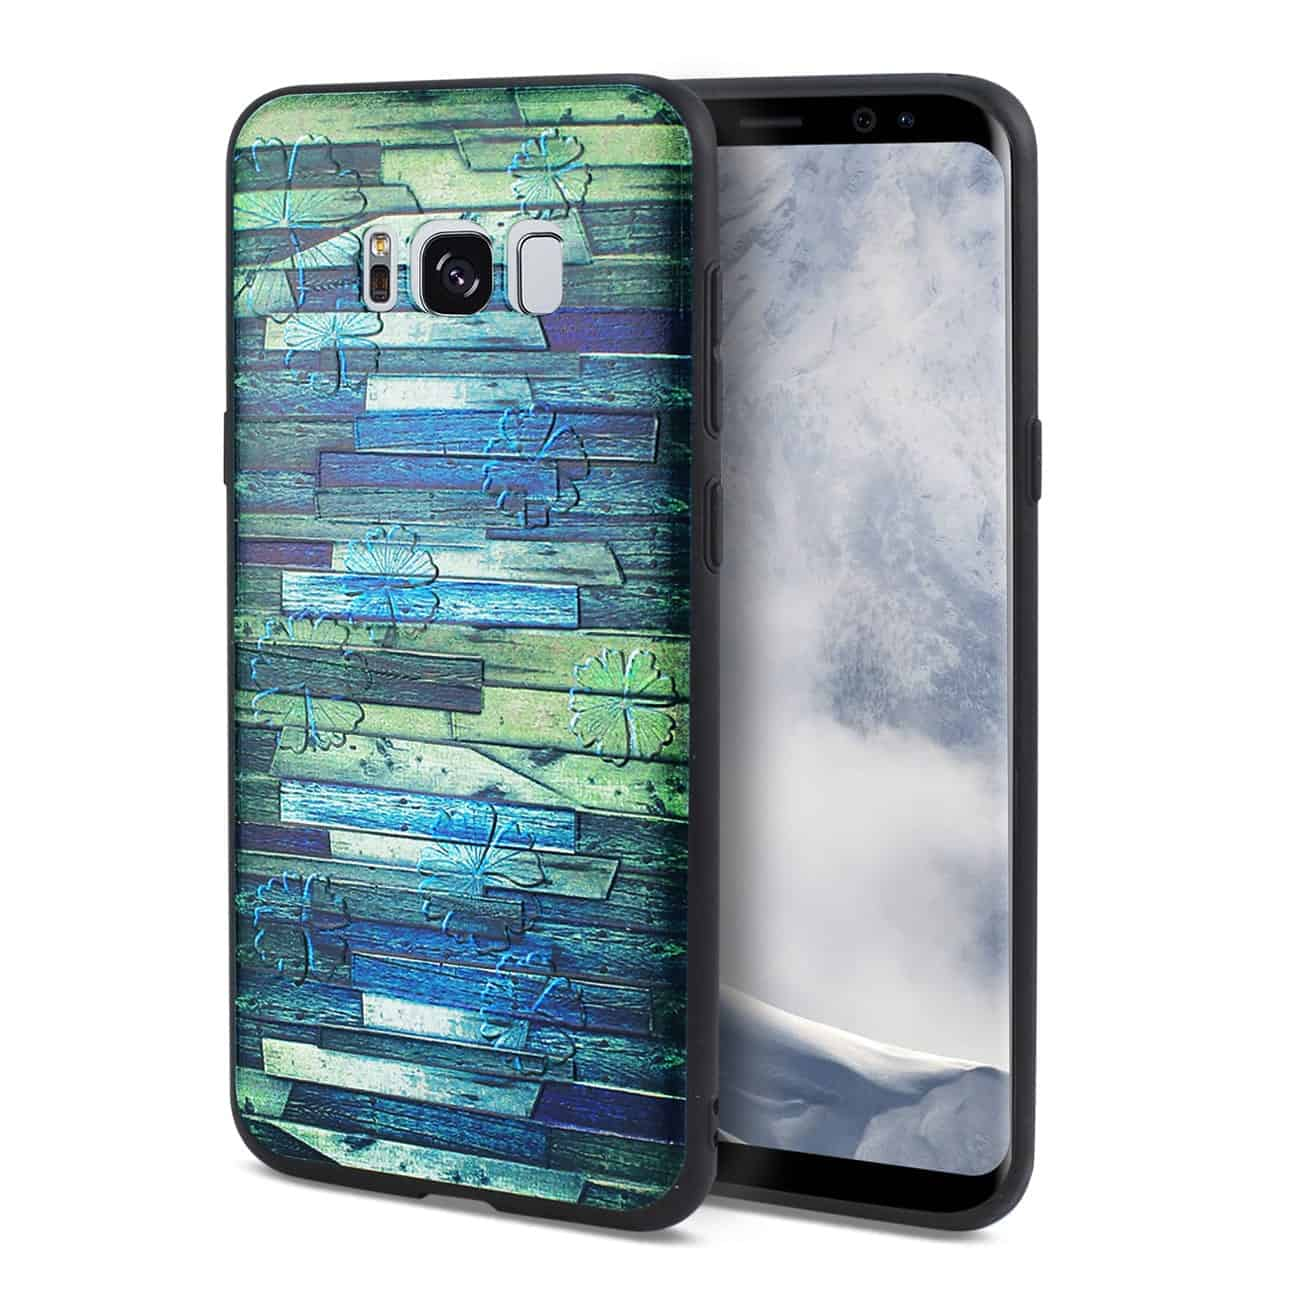 SAMSUNG GALAXY S8 EDGE EMBOSSED WOOD PATTERN DESIGN TPU CASE WITH MULTI-LETTER